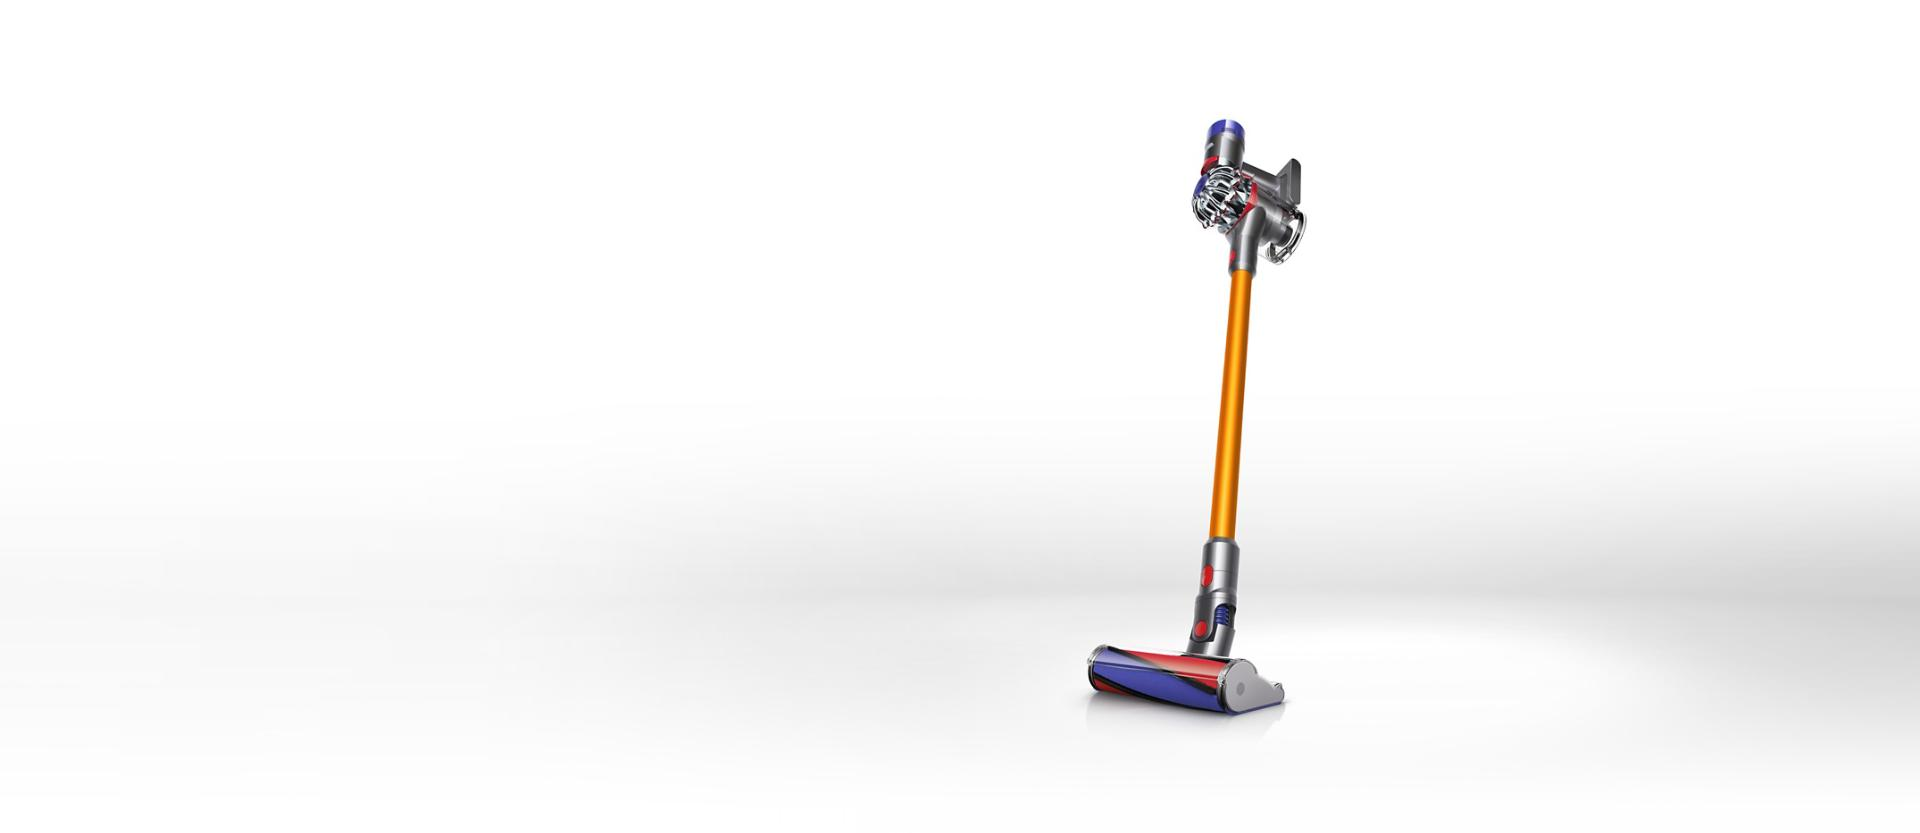 Two Dyson V8 vacuum cleaners